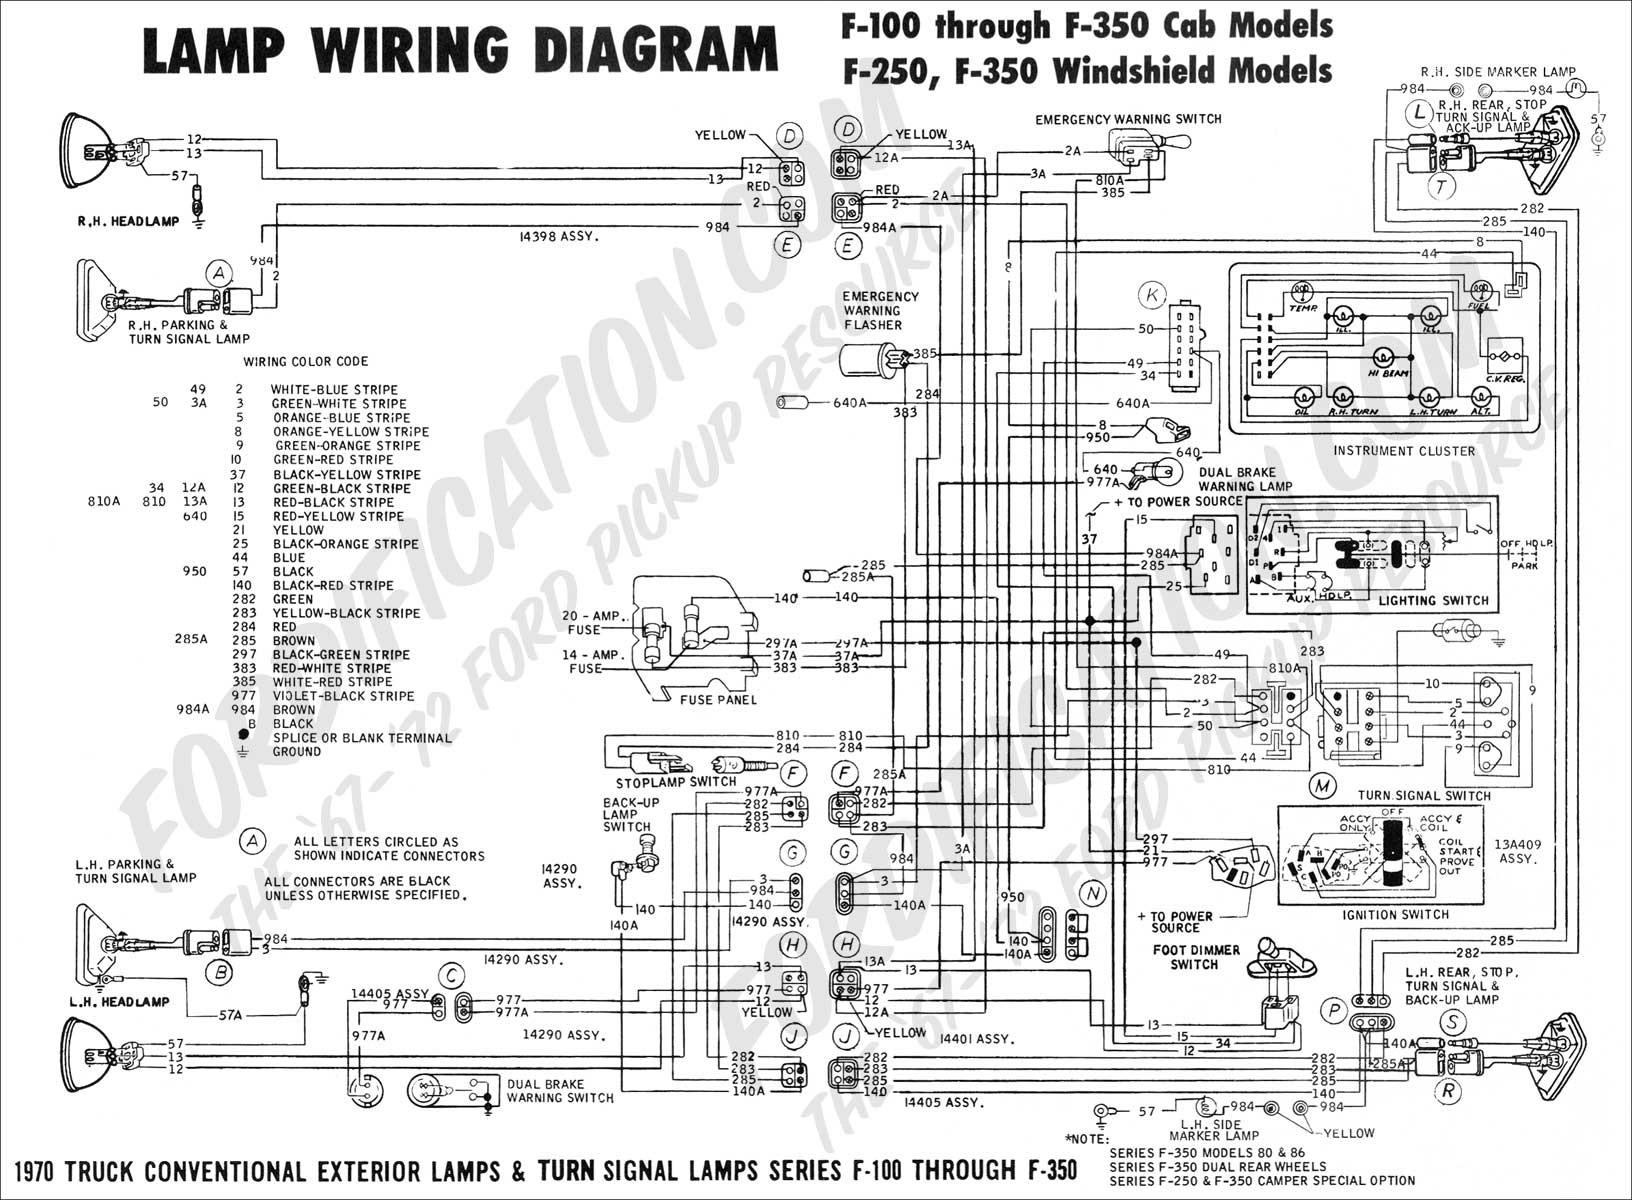 1988 ford f350 wiring diagrams free trusted wiring diagram u2022 rh  soulmatestyle co Ford E-